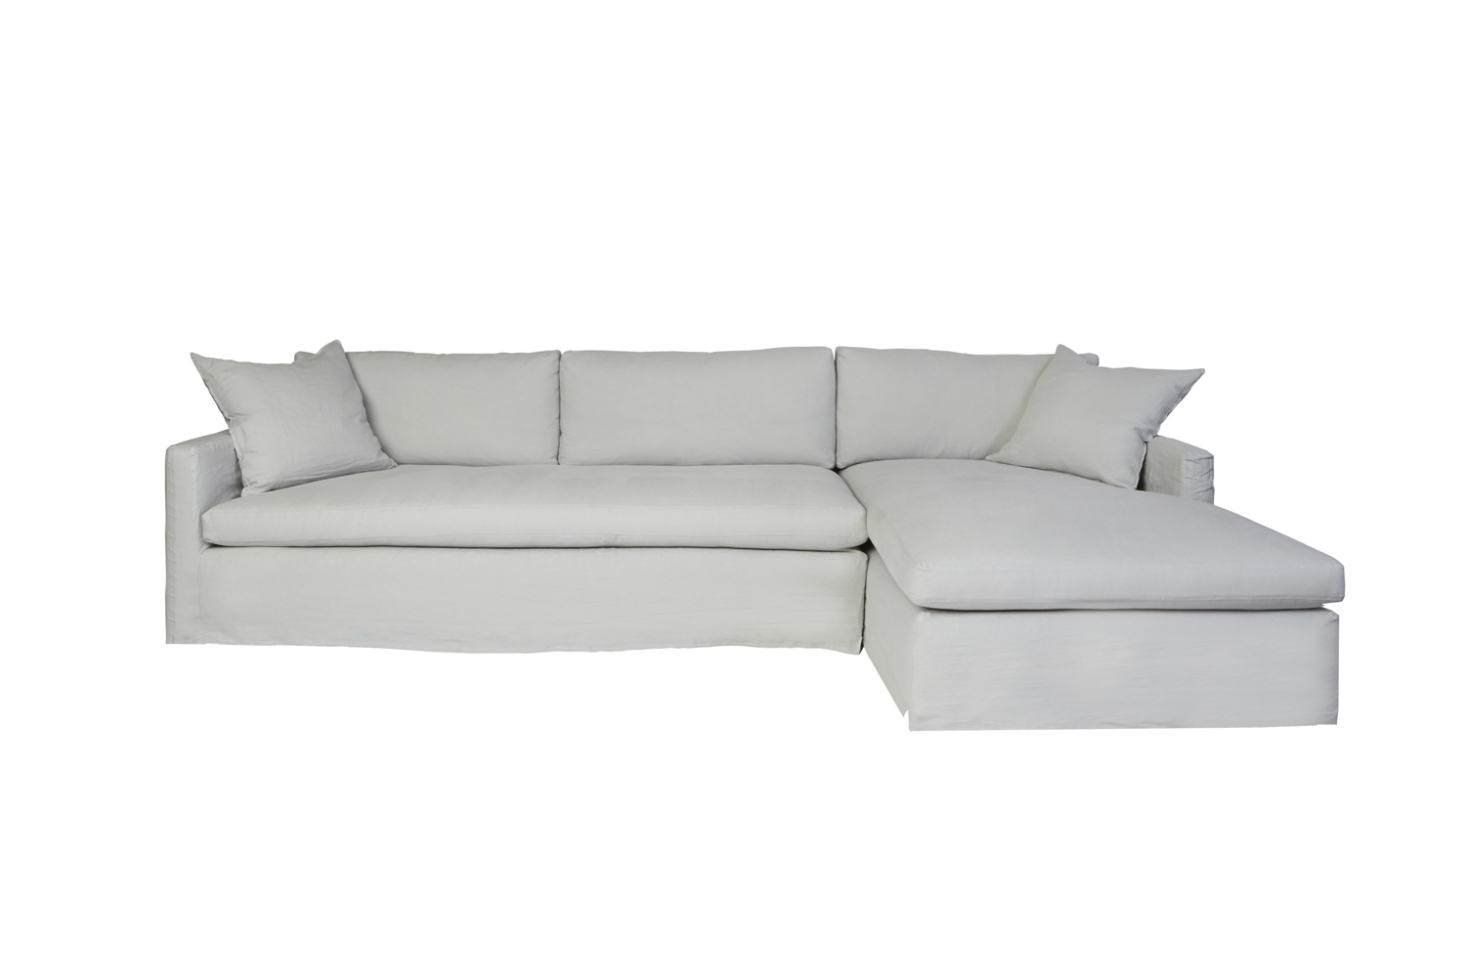 10 Easy Pieces: Sectional Chaise Sofas - Remodelista inside Elm Grande Ii 2 Piece Sectionals